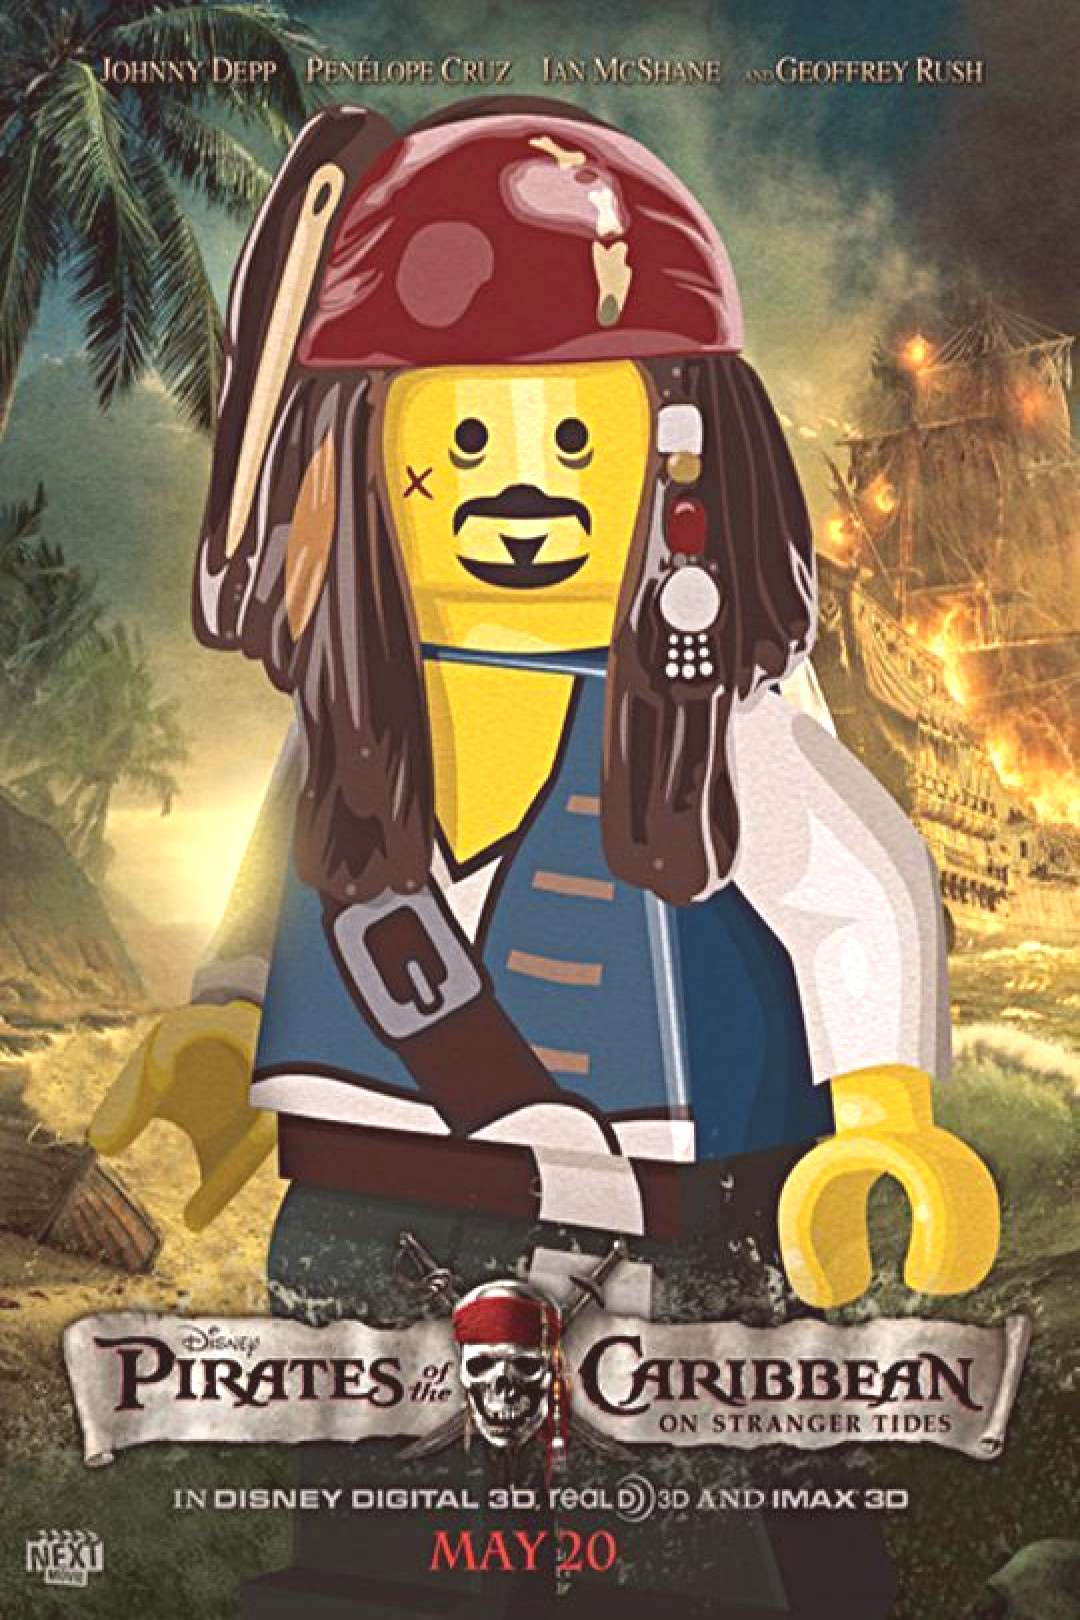 Pirates of the Caribbean Lego poster - LOVE THIS GAME!  - °o° Disney °o° - ... Pirates of the